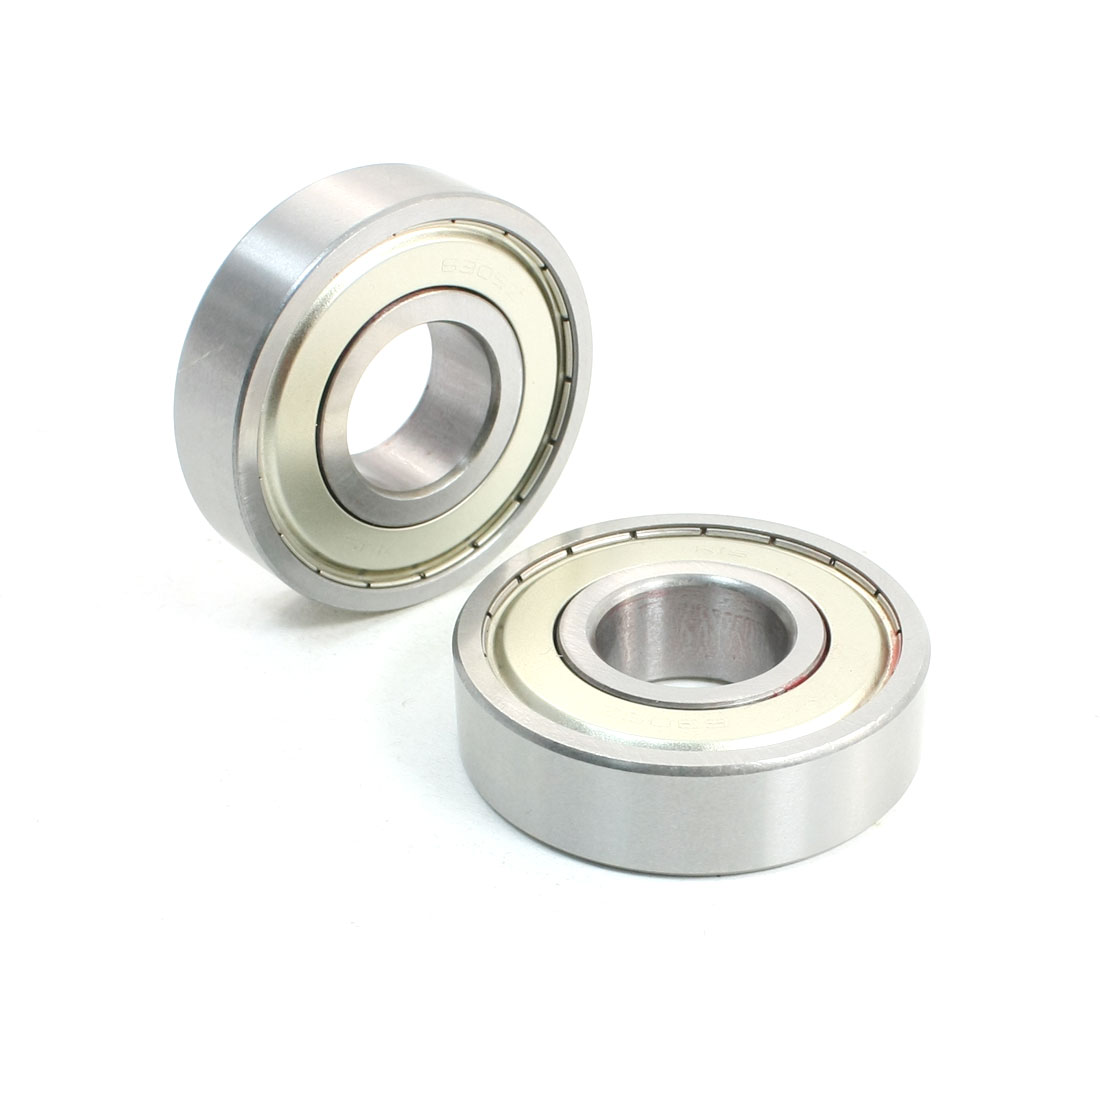 2 Pcs 25 x 62 x 17mm Single Row Deep Groove Ball Bearings 6305Z